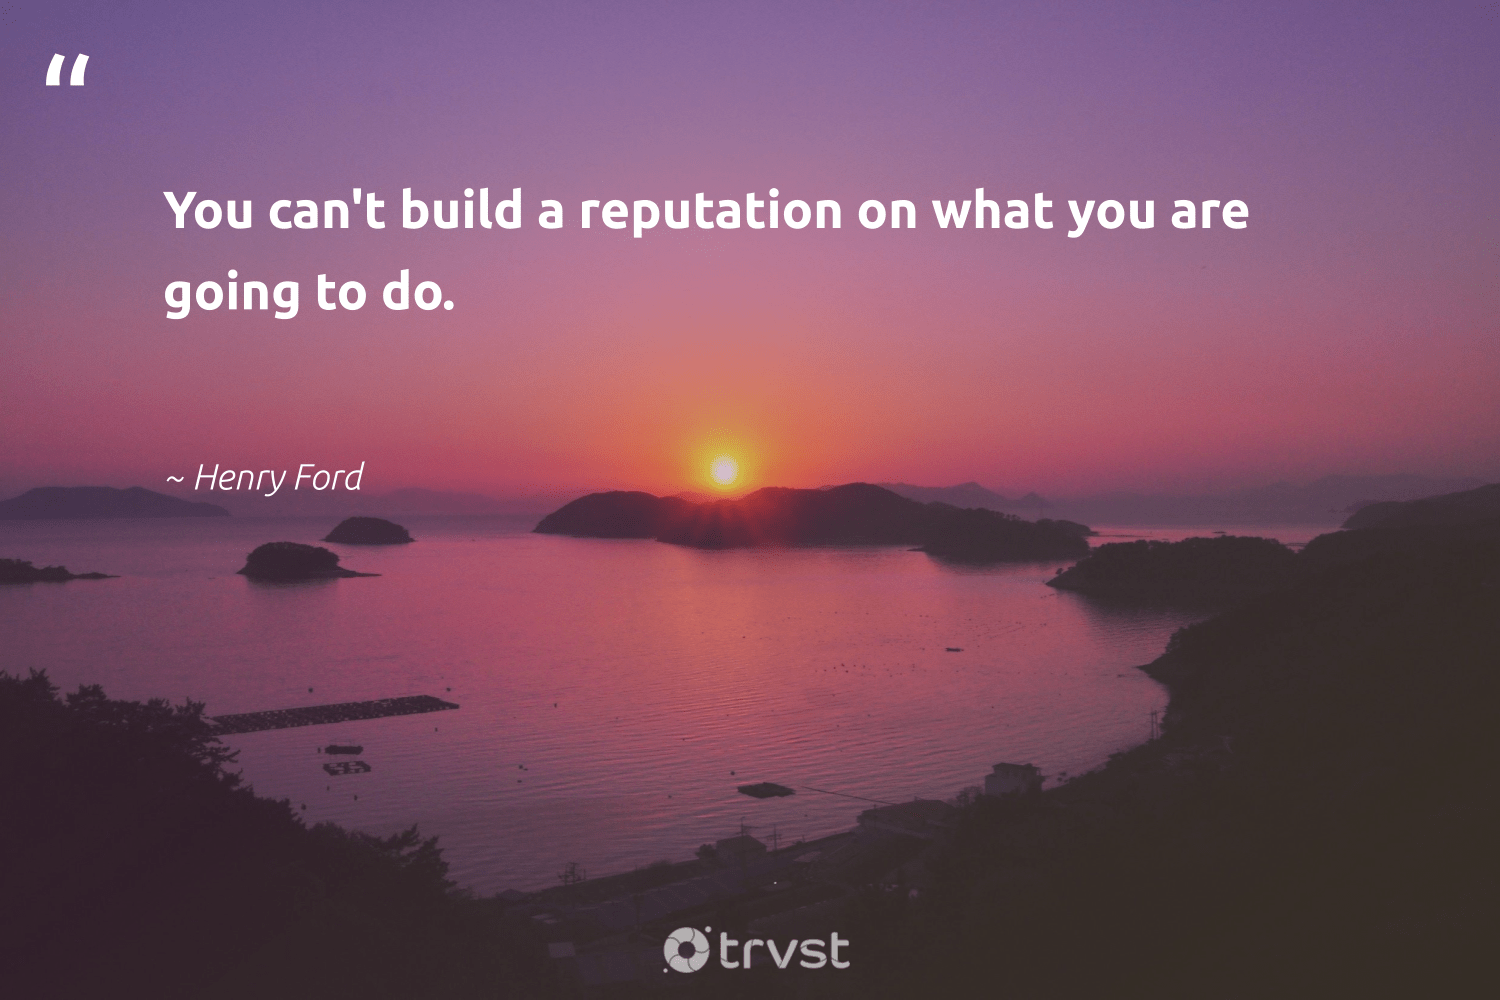 """""""You can't build a reputation on what you are going to do.""""  - Henry Ford #trvst #quotes #reputation #futureofwork #changetheworld #nevergiveup #socialimpact #softskills #dogood #begreat #thinkgreen #dosomething"""